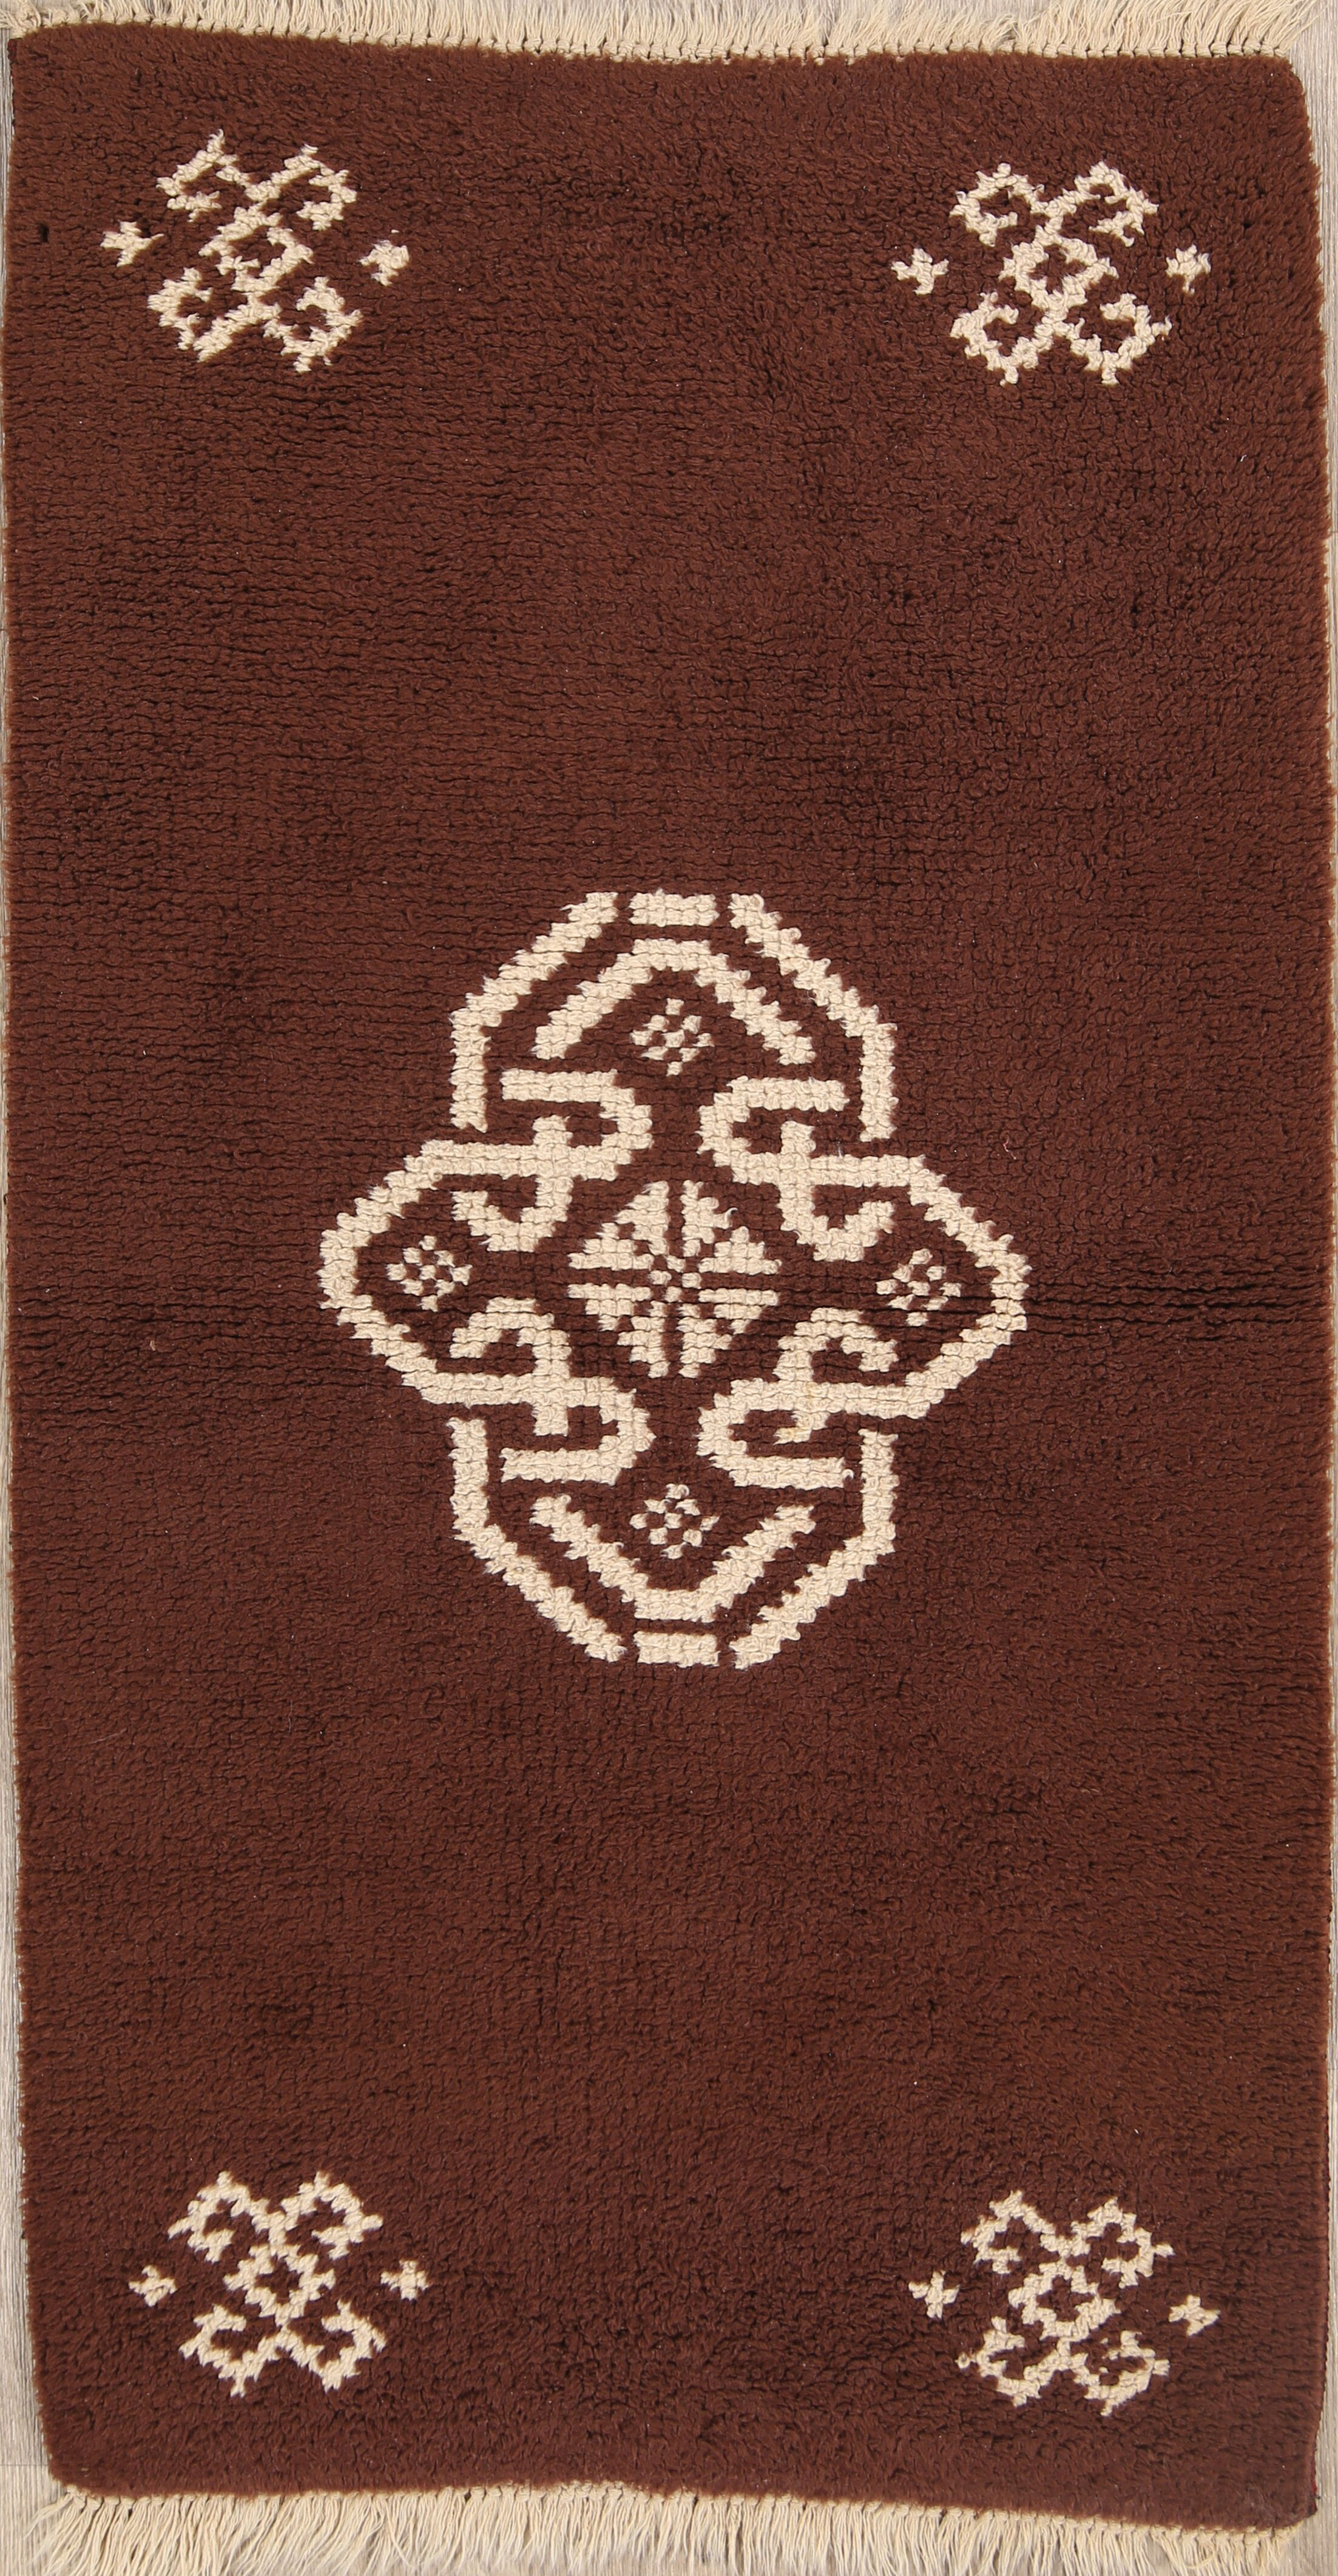 Jamerson Rya Oriental Hand-Knotted Wool Brown/White Area Rug